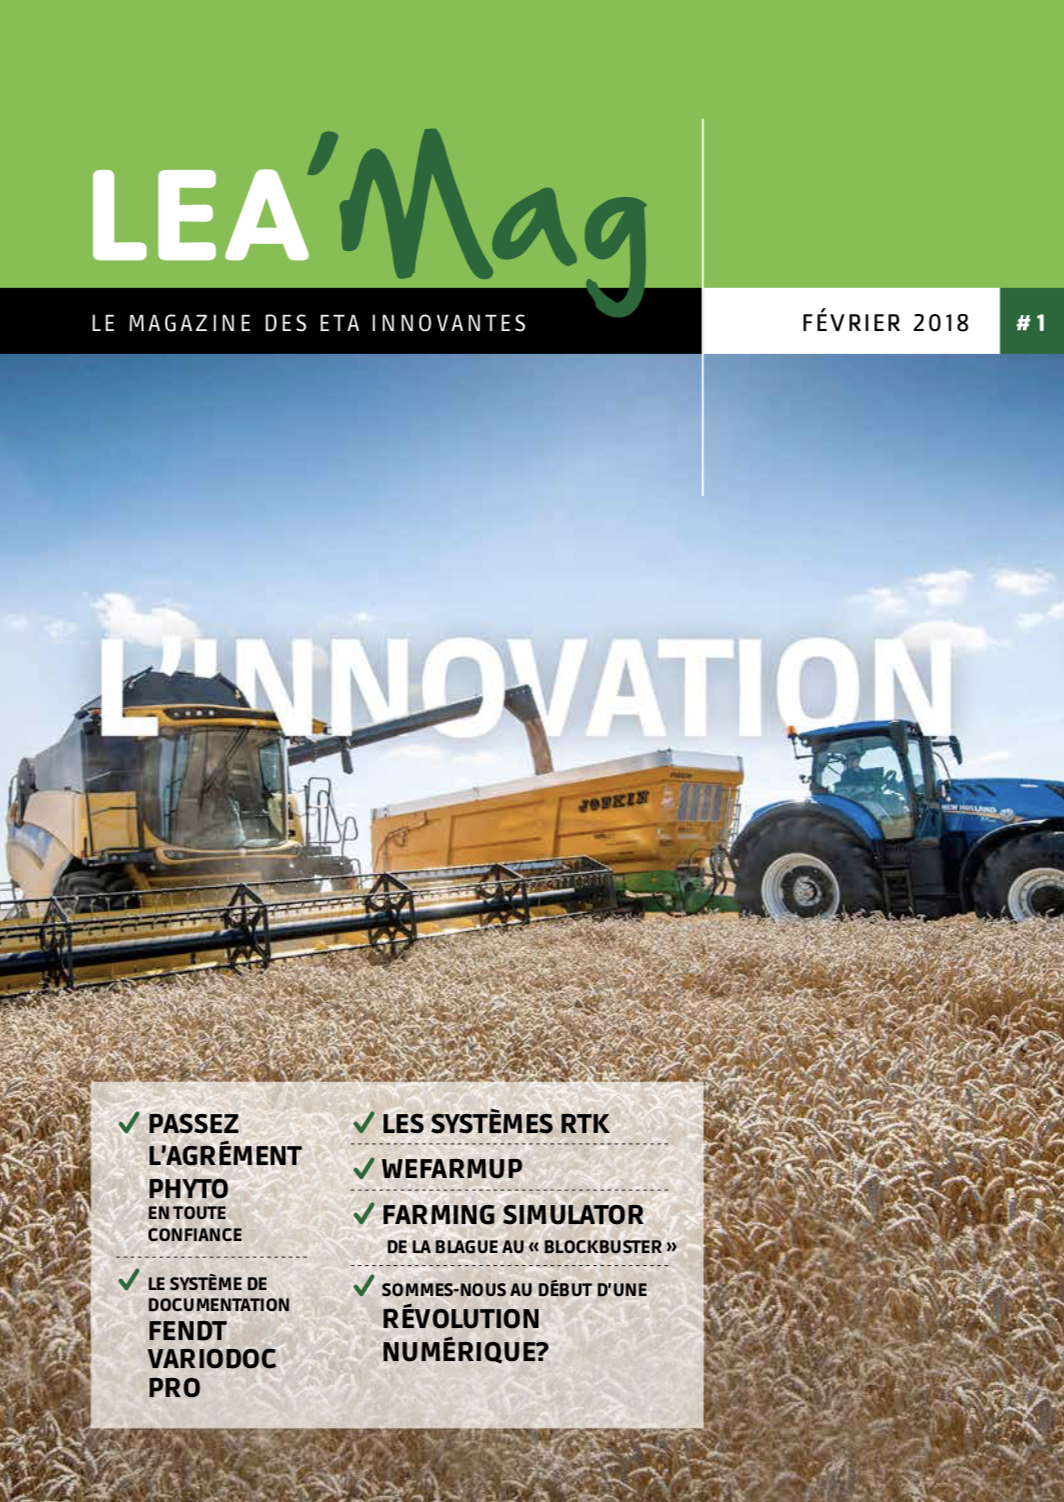 LEA'Mag le magazine des entreprises de travaux agricoles innovantes / the magazine for innovative agricultural operations